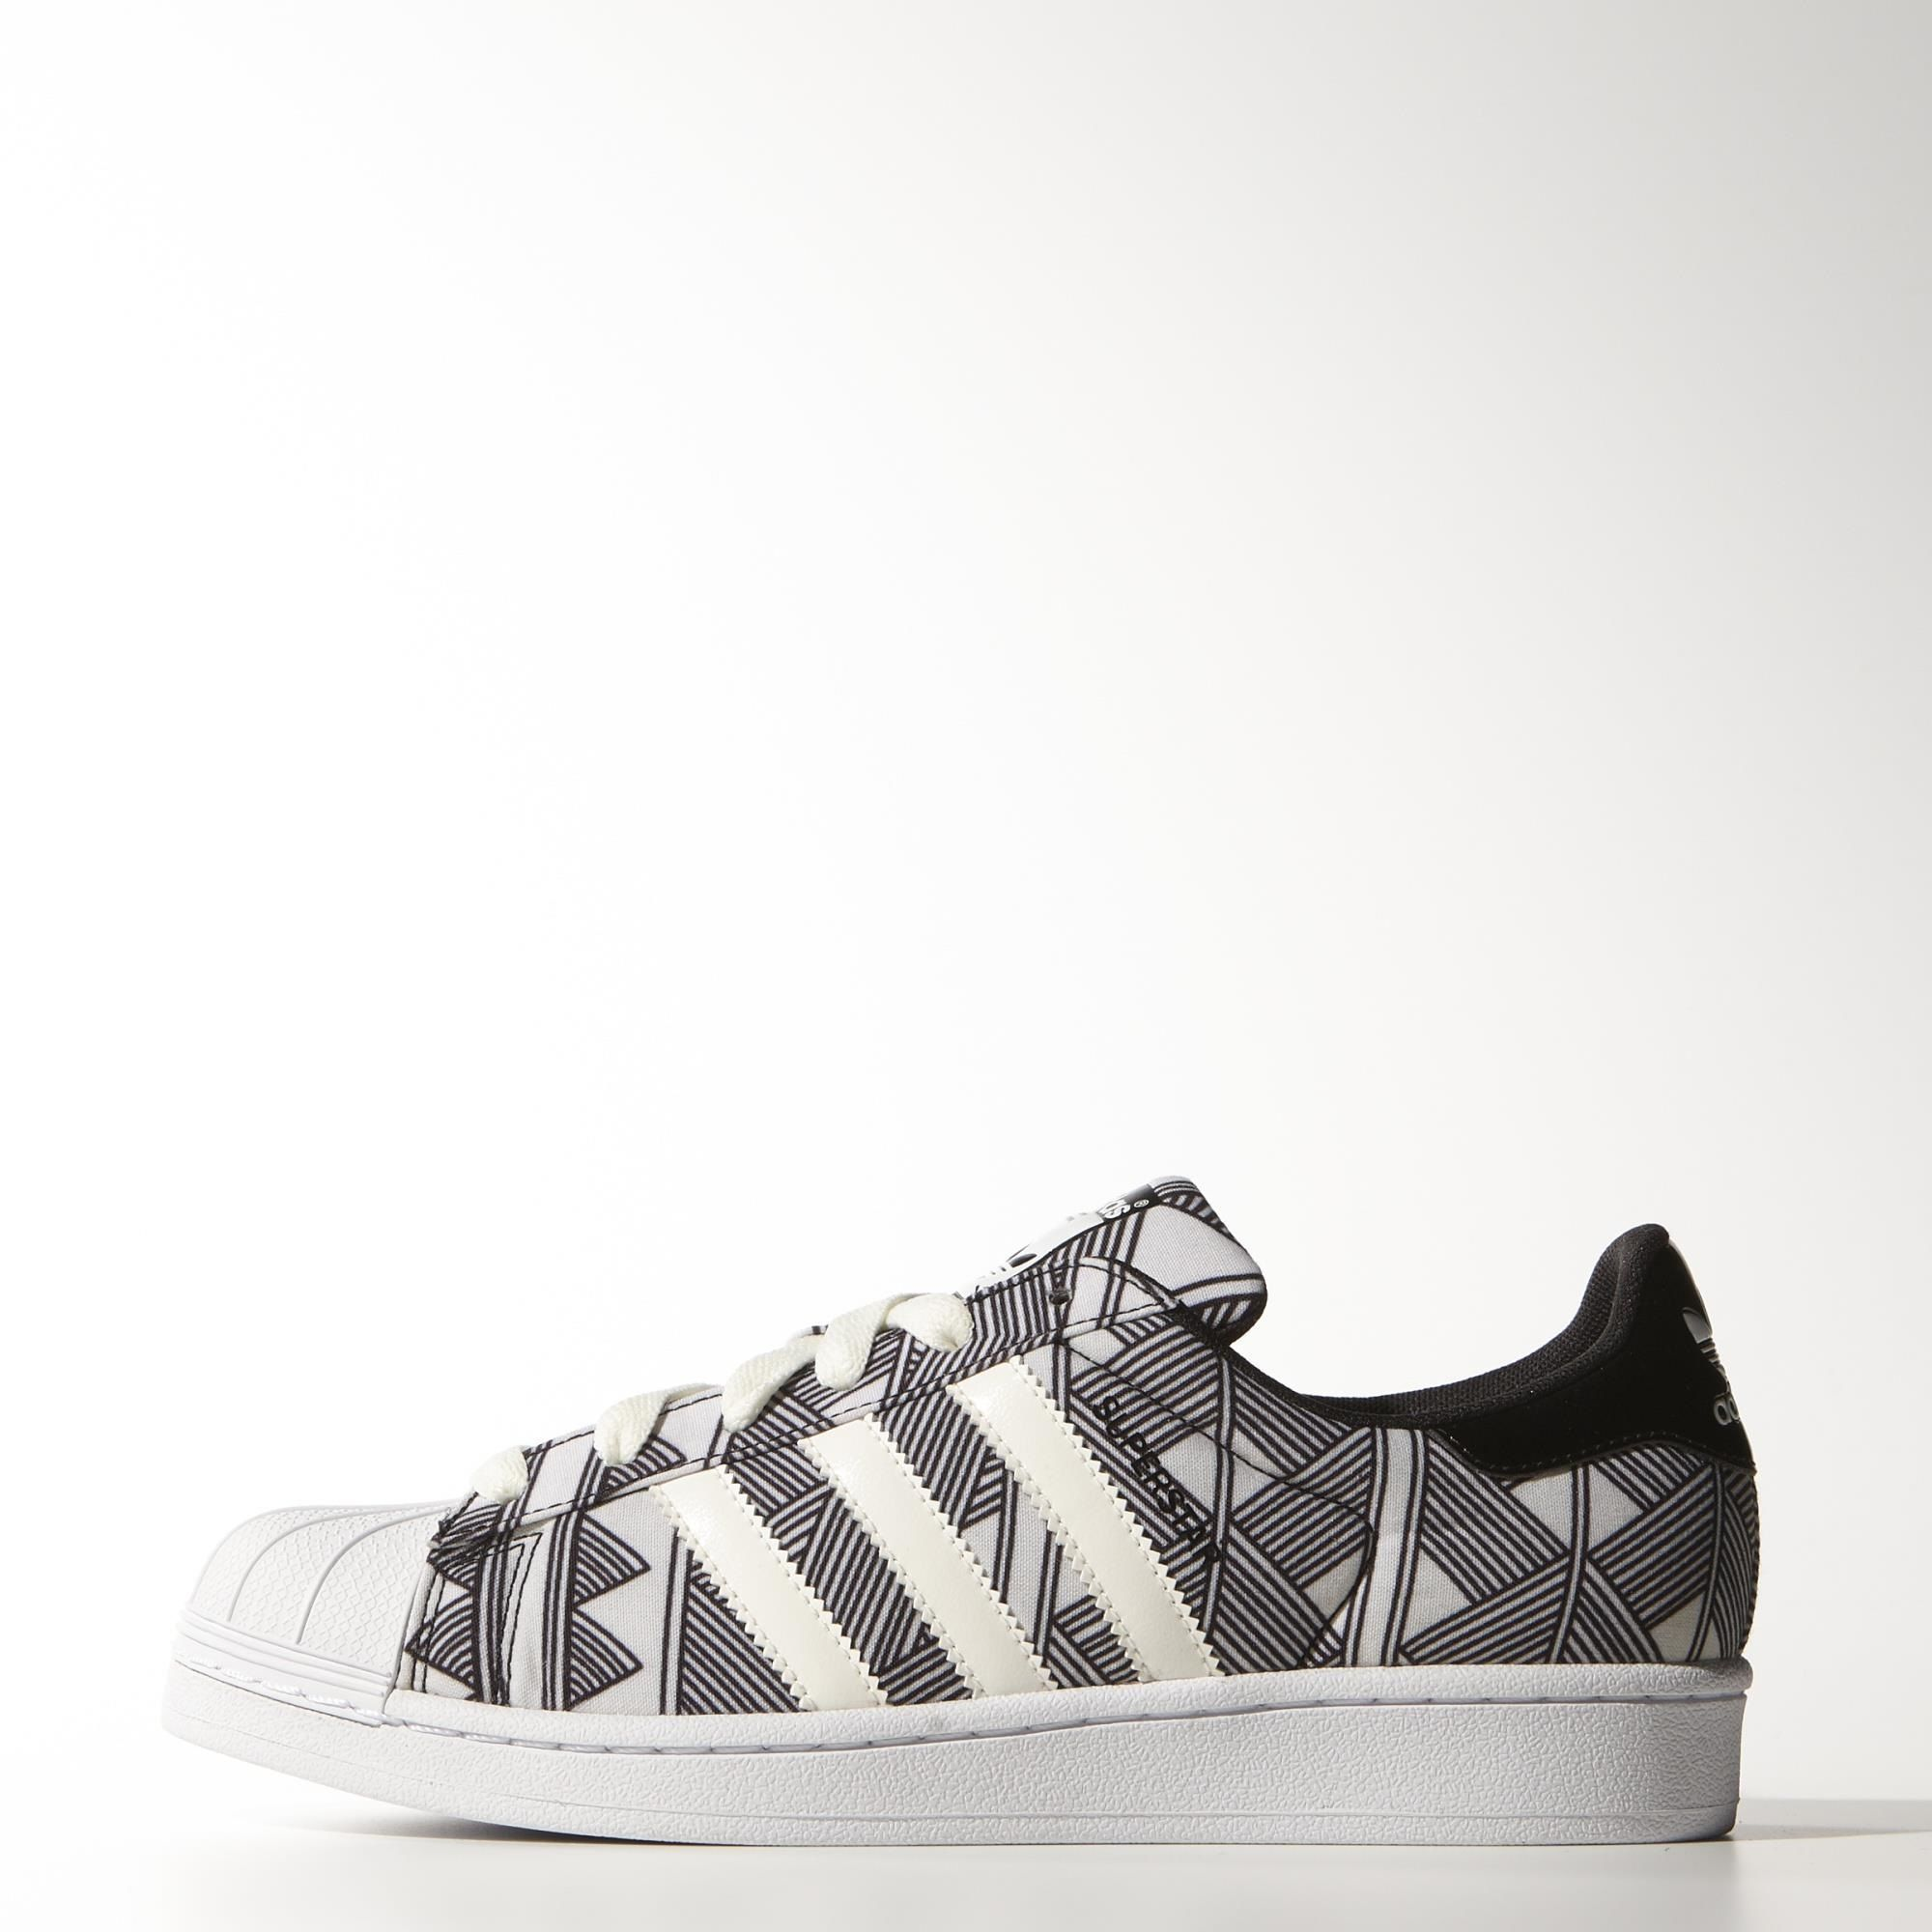 adidas superstar adidas superstar pinterest zapatos